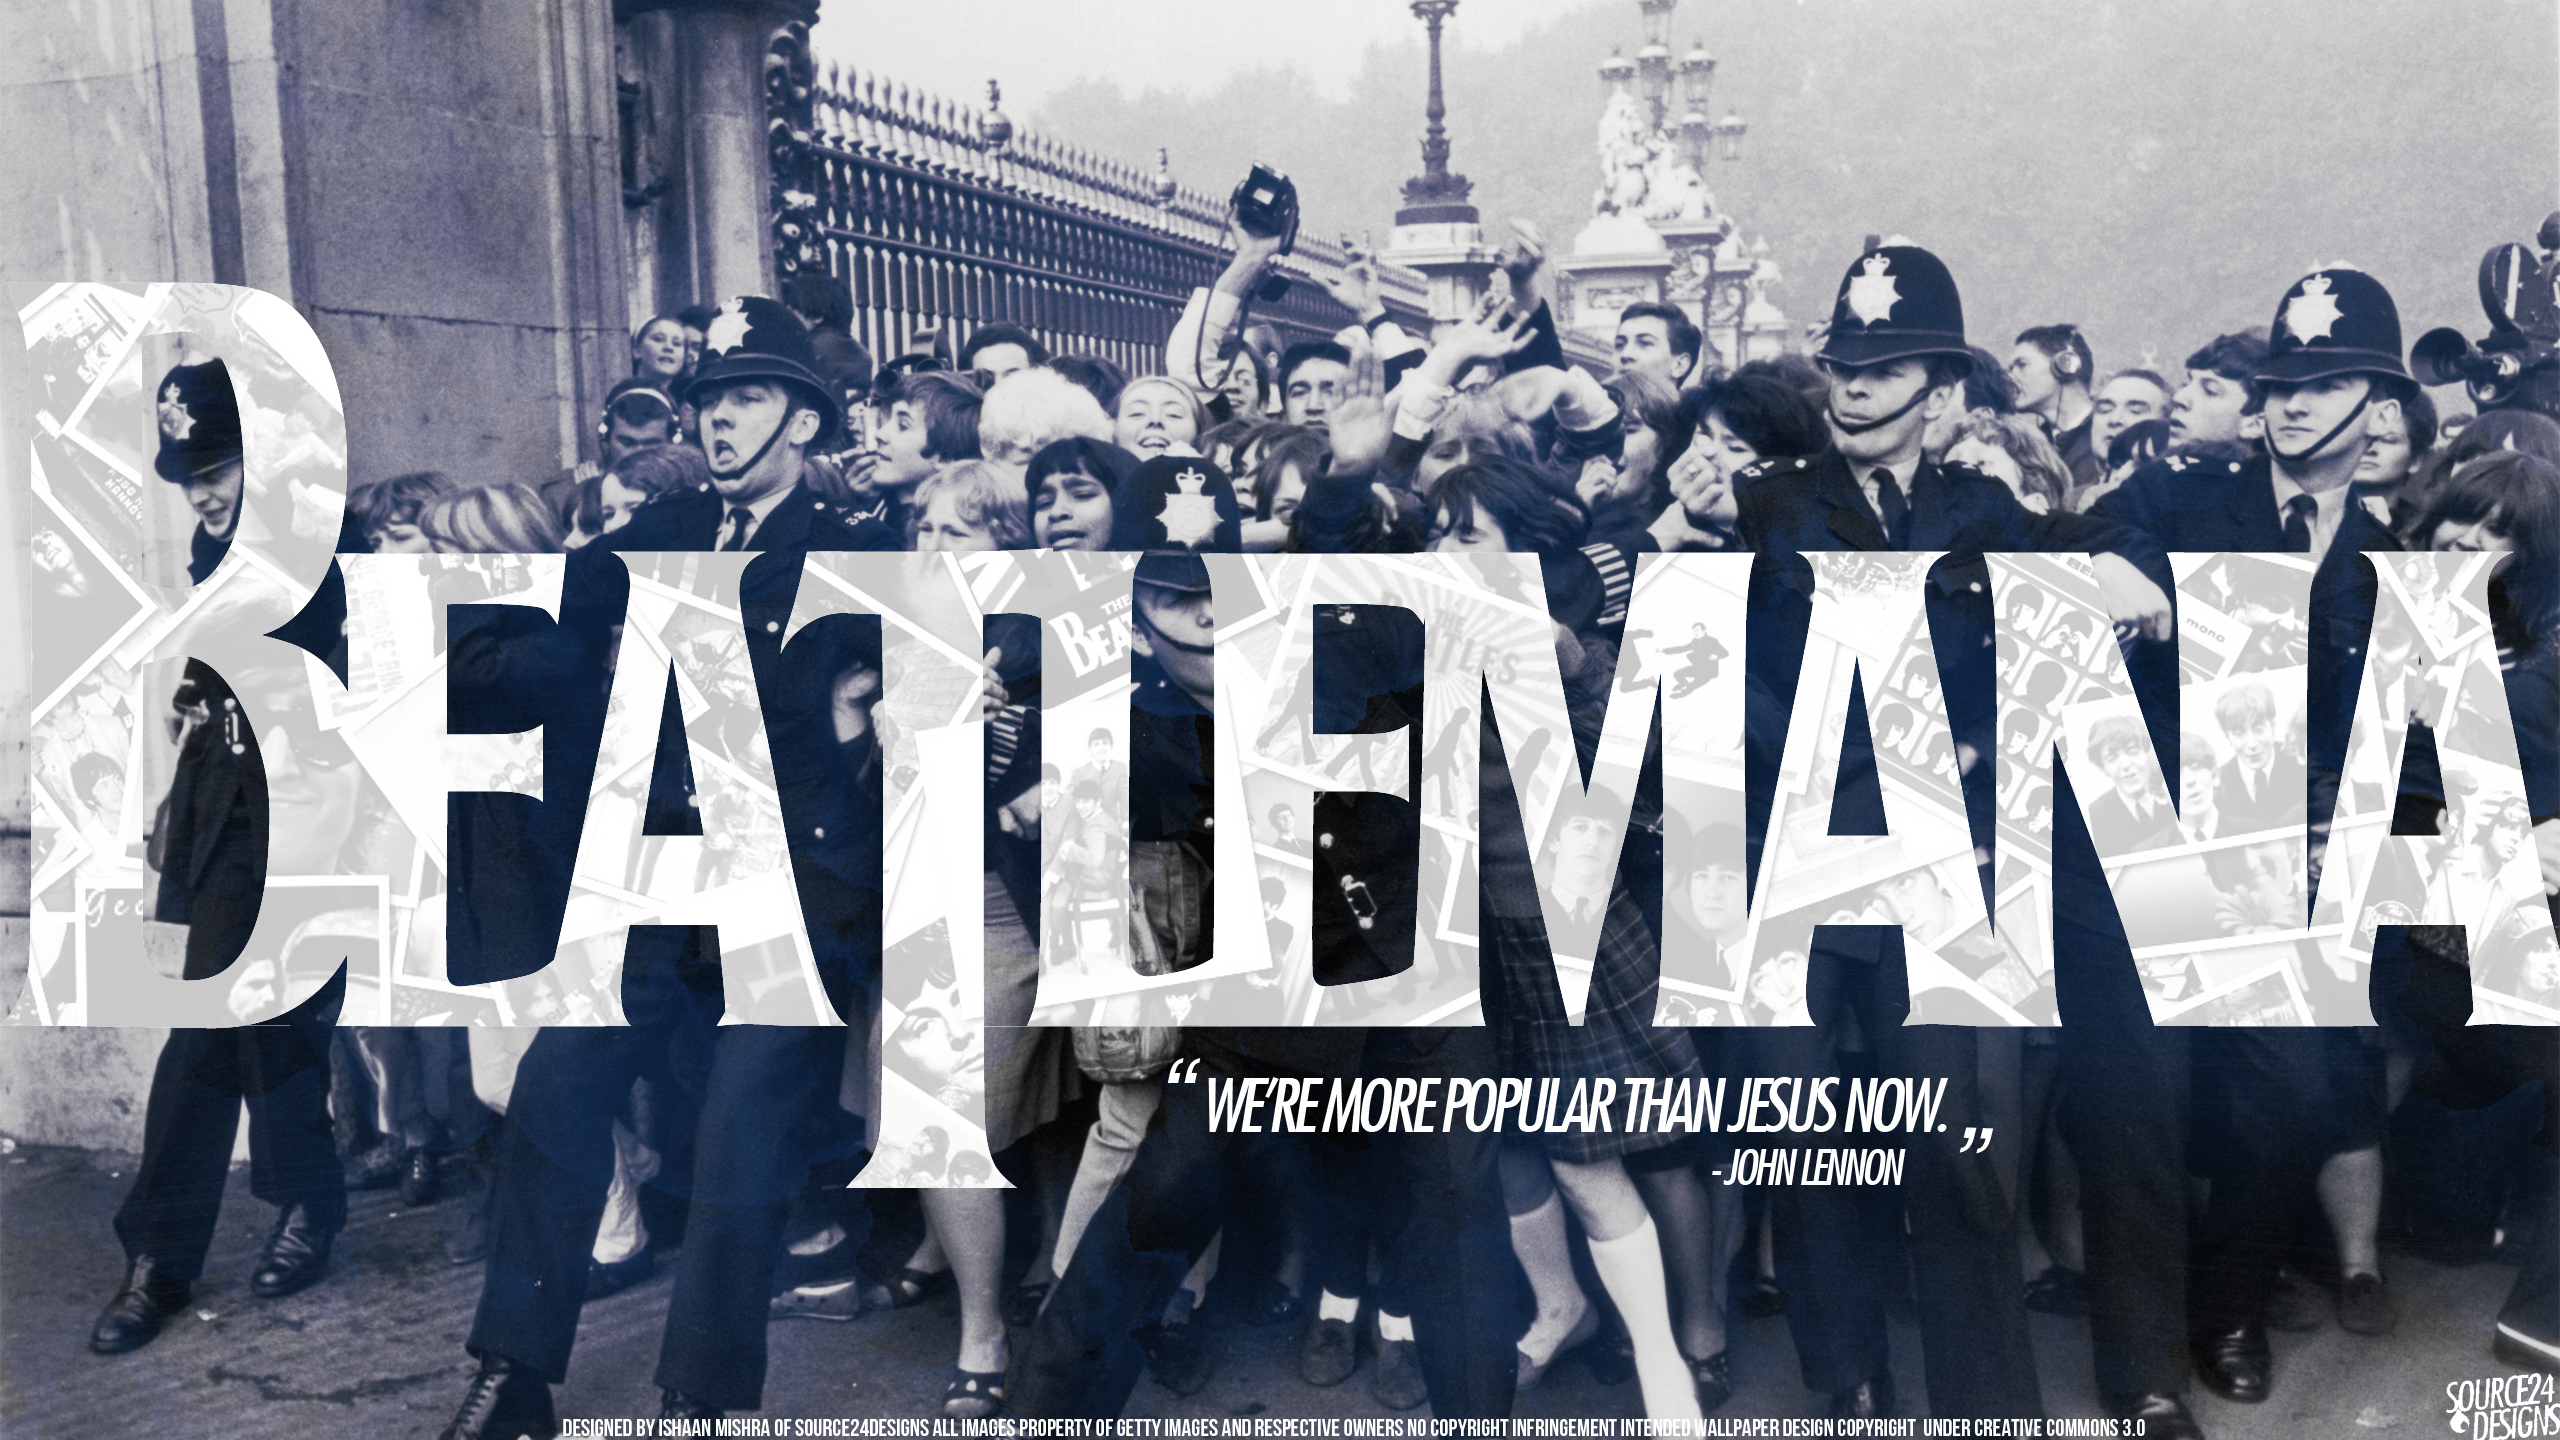 a history of the beatles and beatlemania in england Beatlemania in the united kingdom history of the beatles the quarrymen in the crowds screamed and screamed for the beatles, and for the first time in uk history.